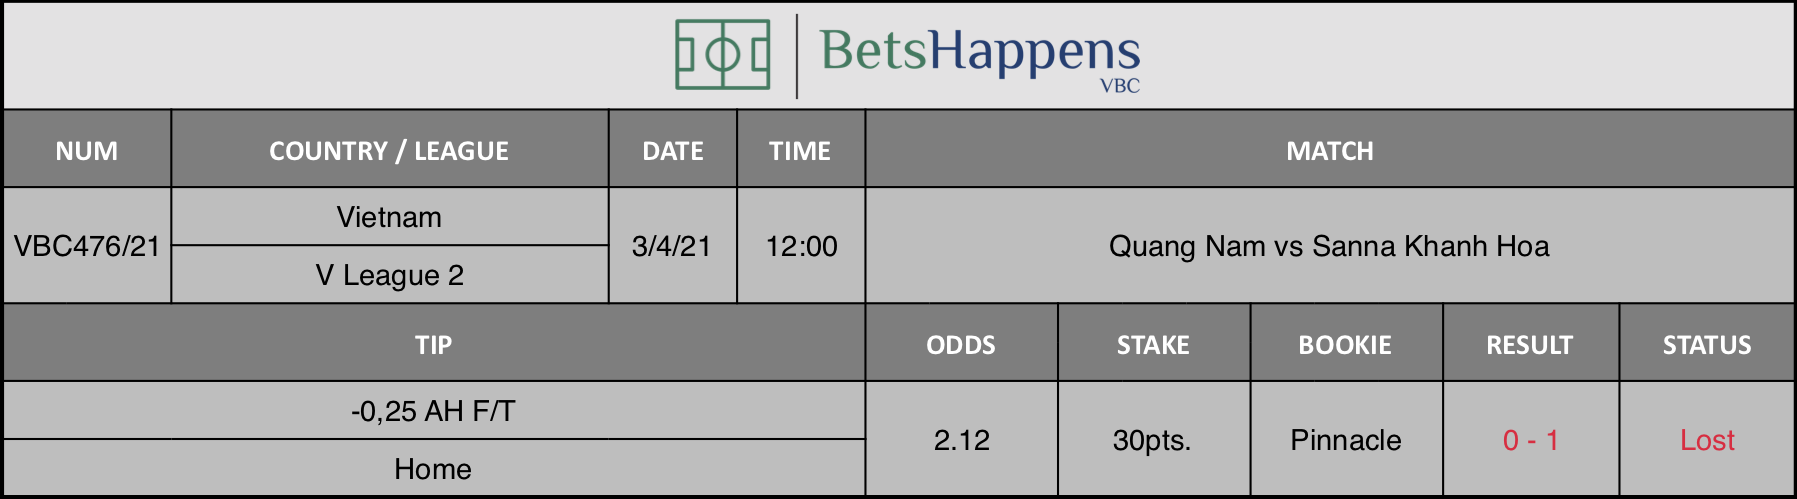 Results of our tip for the Quang Nam vs Sanna Khanh Hoa match where -0,25 AH F/T Home is recommended.